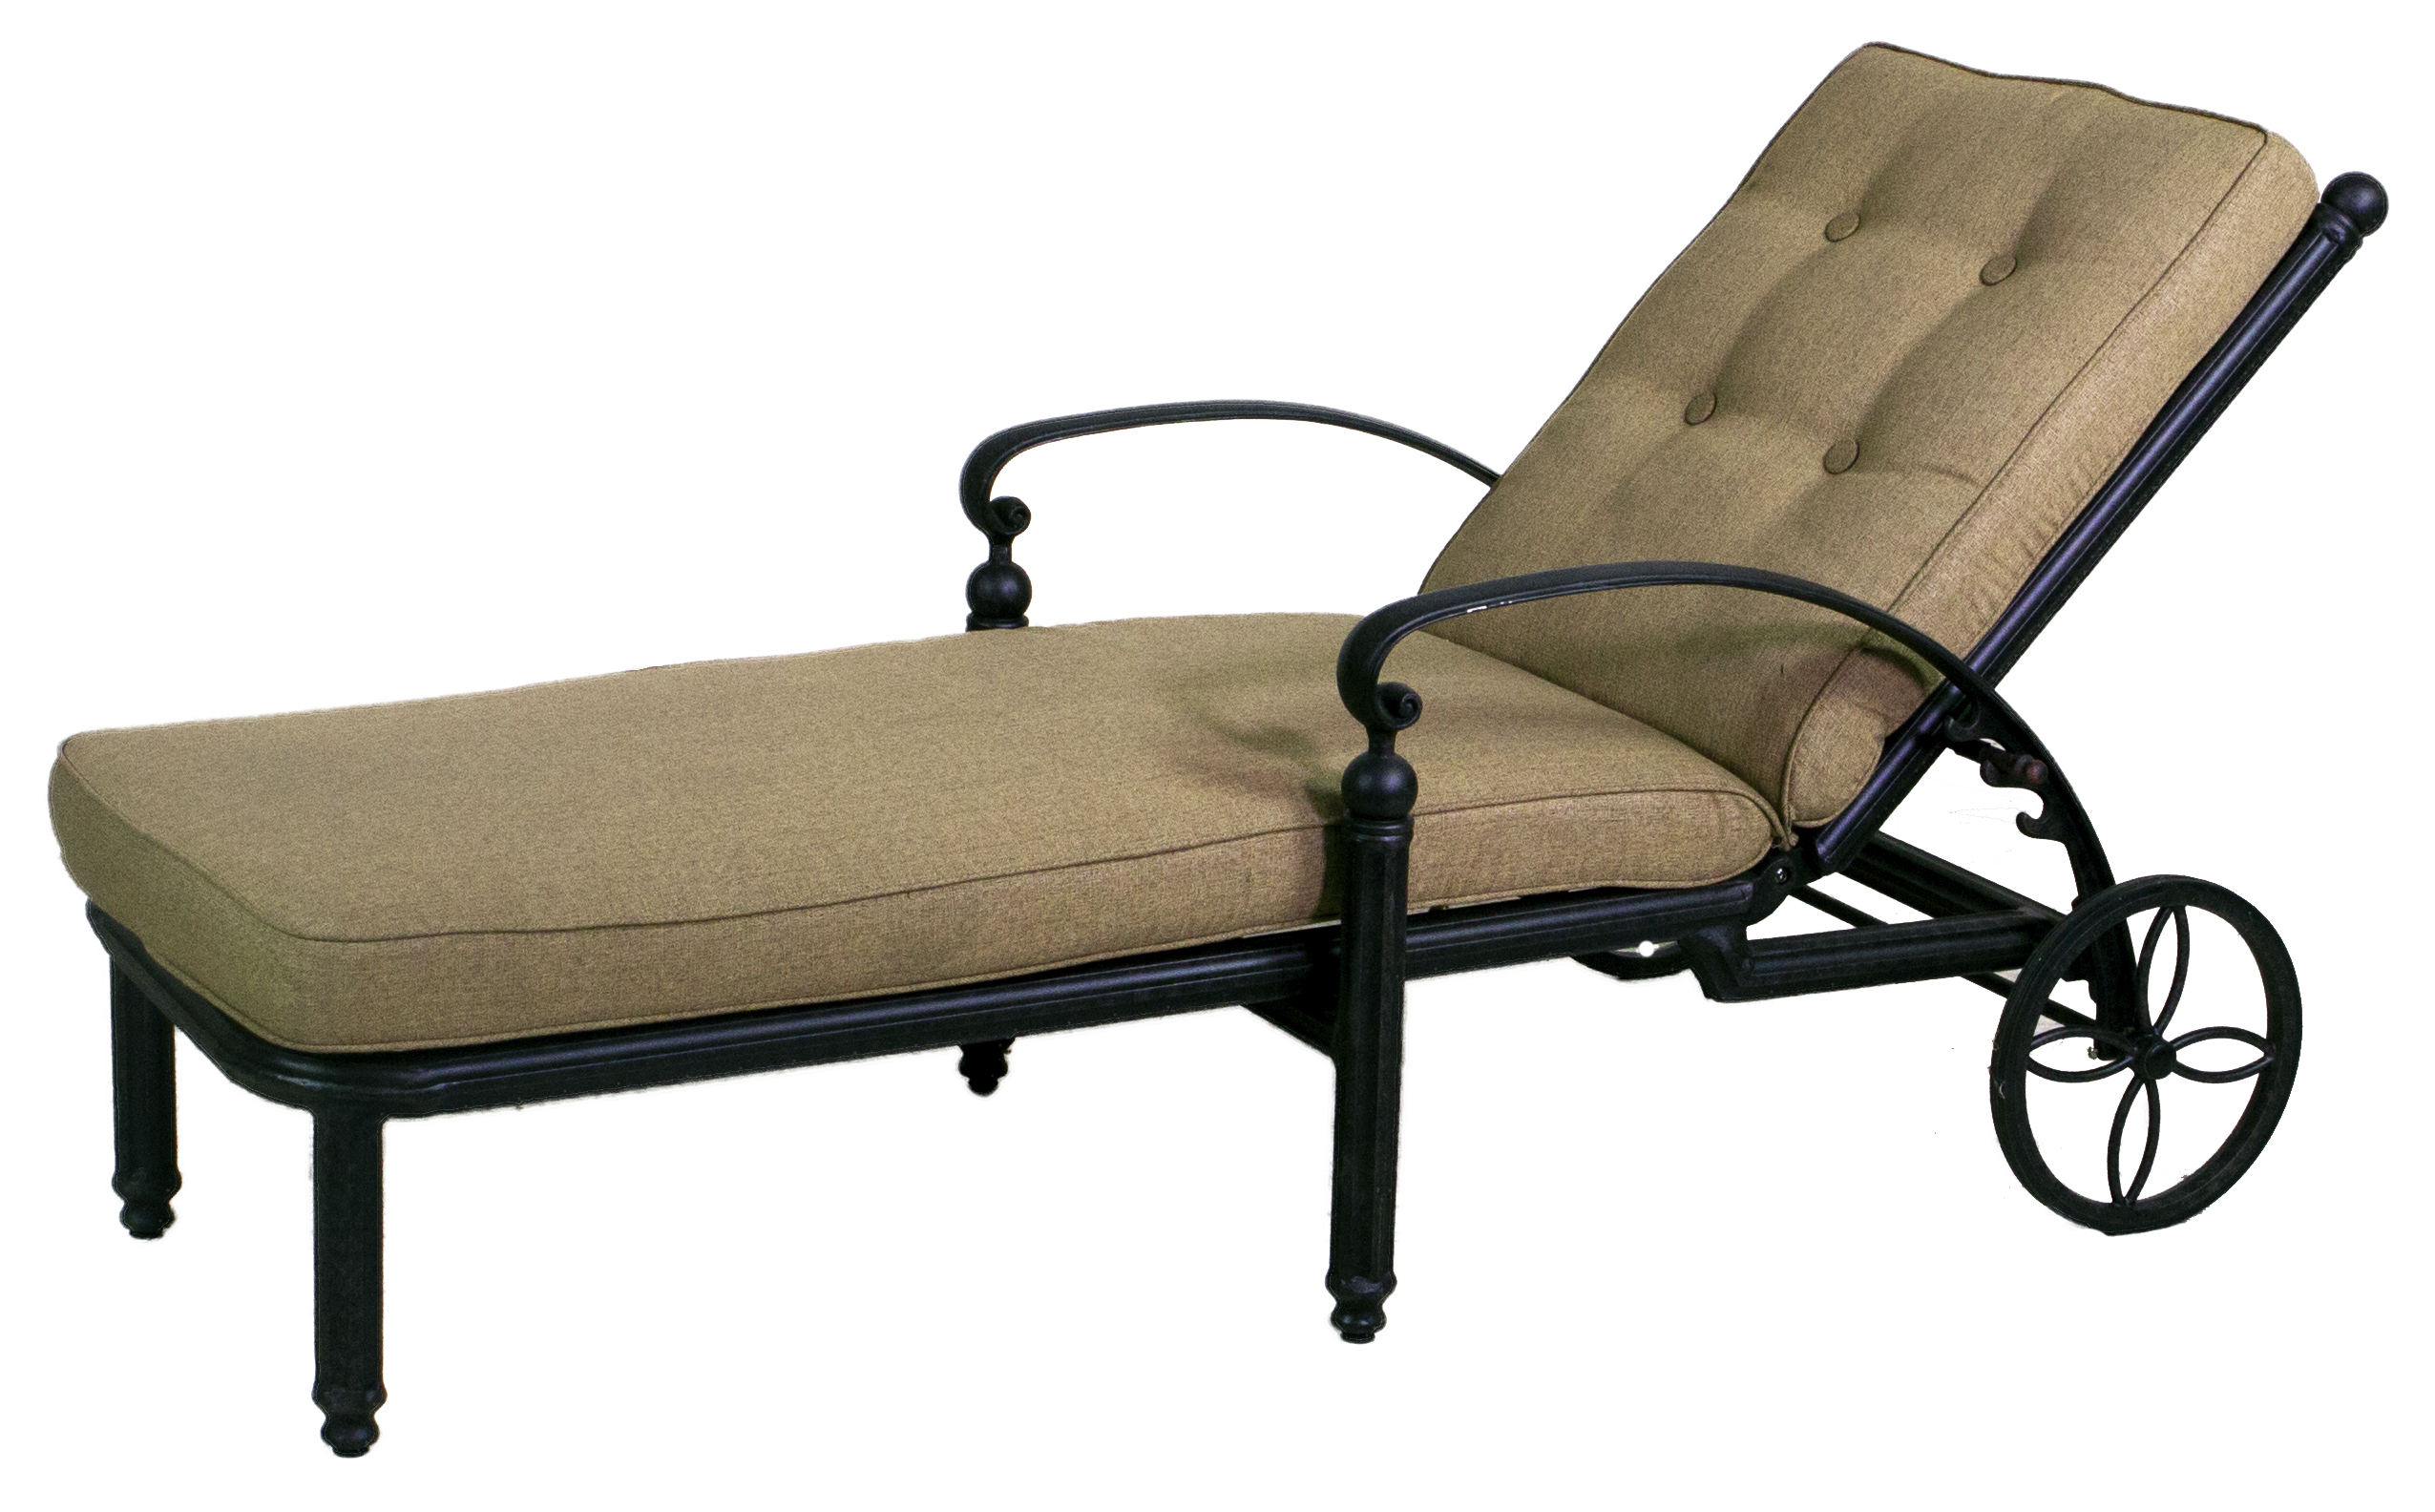 Best of backyard basso collection chaise lounge set for Best chaise lounge